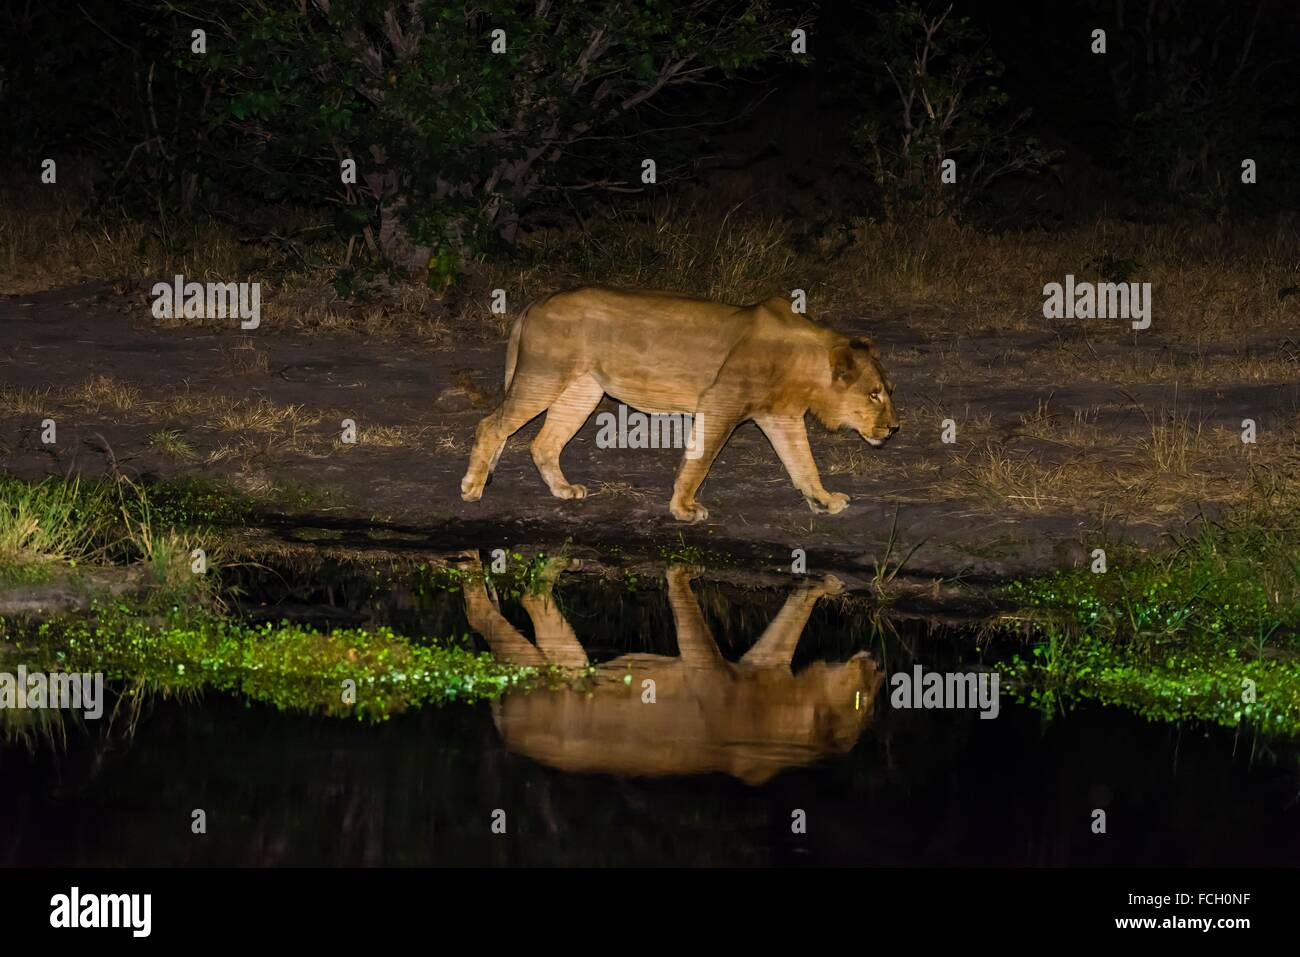 Female lion and her reflection in a pond at night, Linyanti Marshes, Botswana. Stock Photo